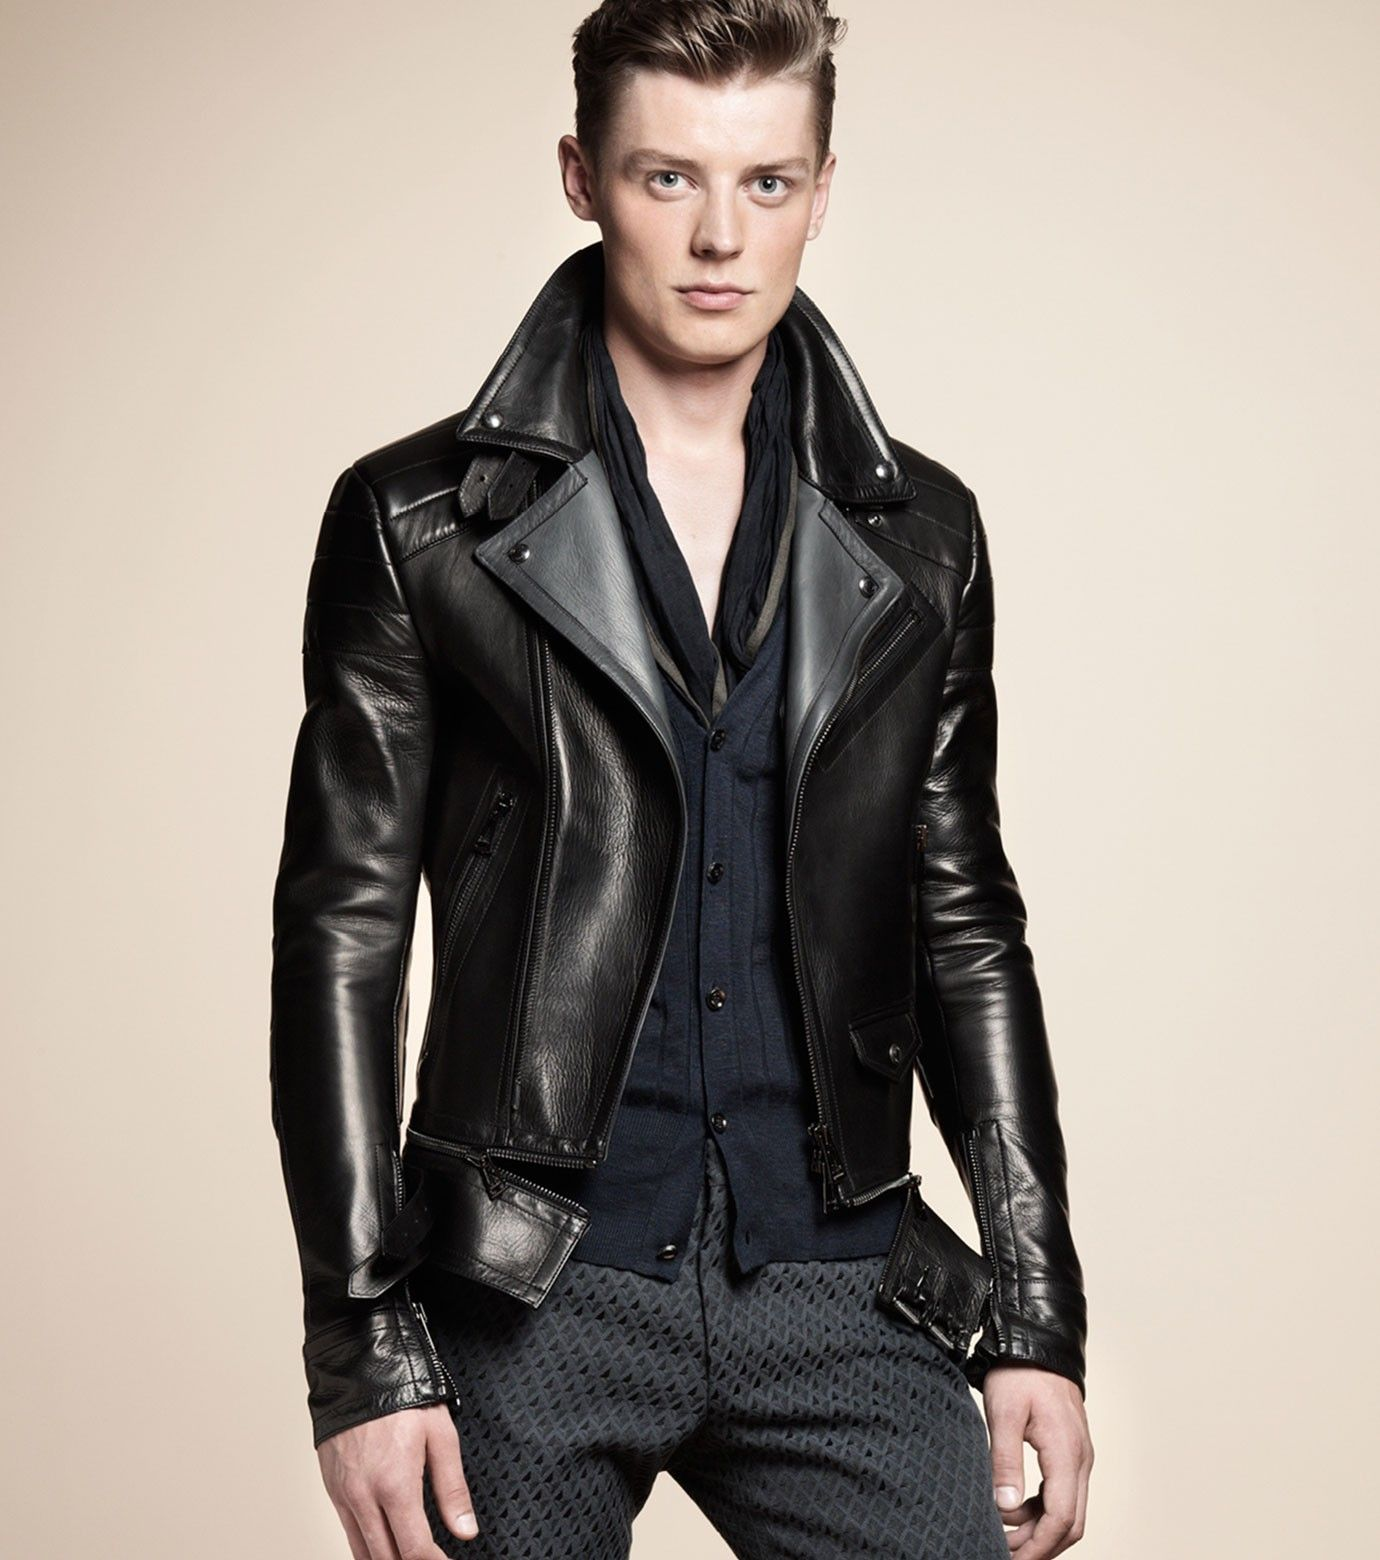 MEN'S MOTORCYCLE JACKET Make a sleek transition from